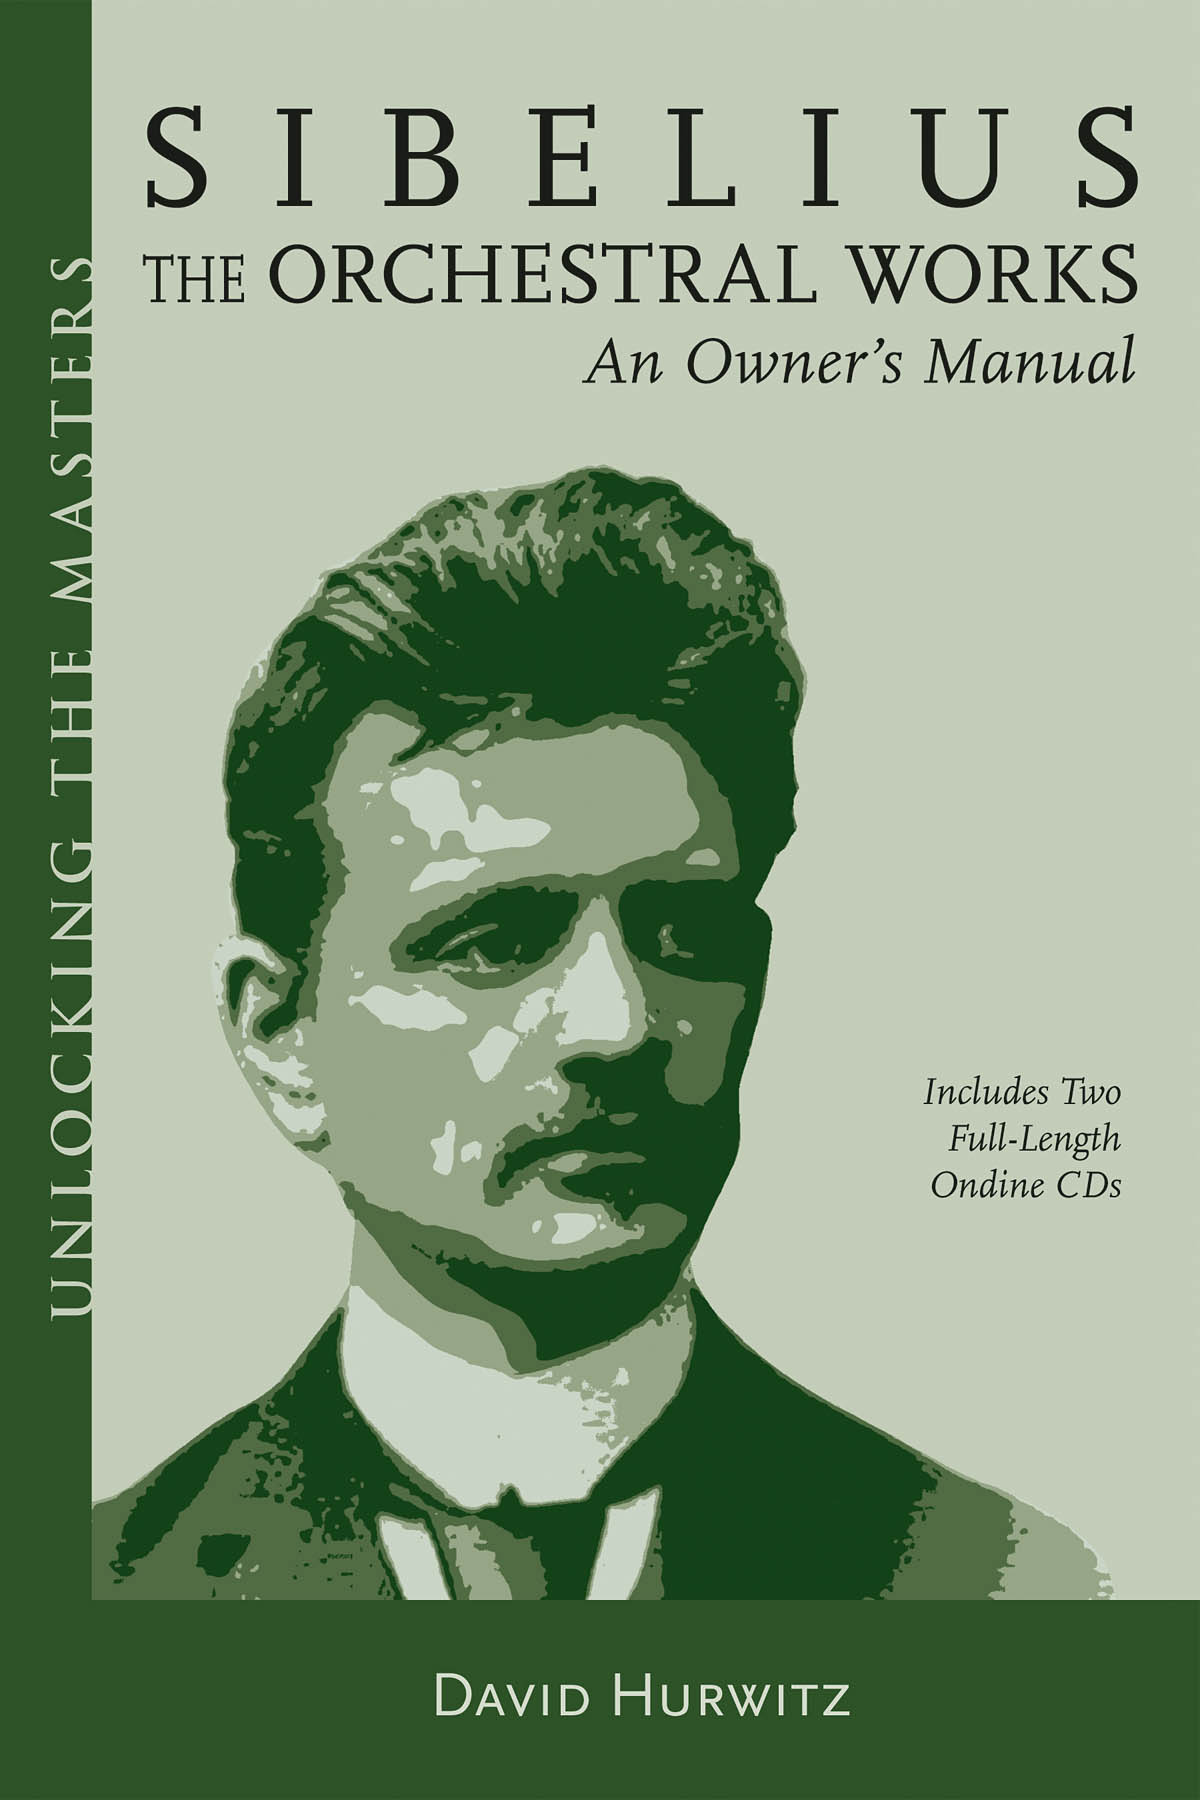 Jean Sibelius: Sibelius - The Orchestral Works: Reference Books: Biography